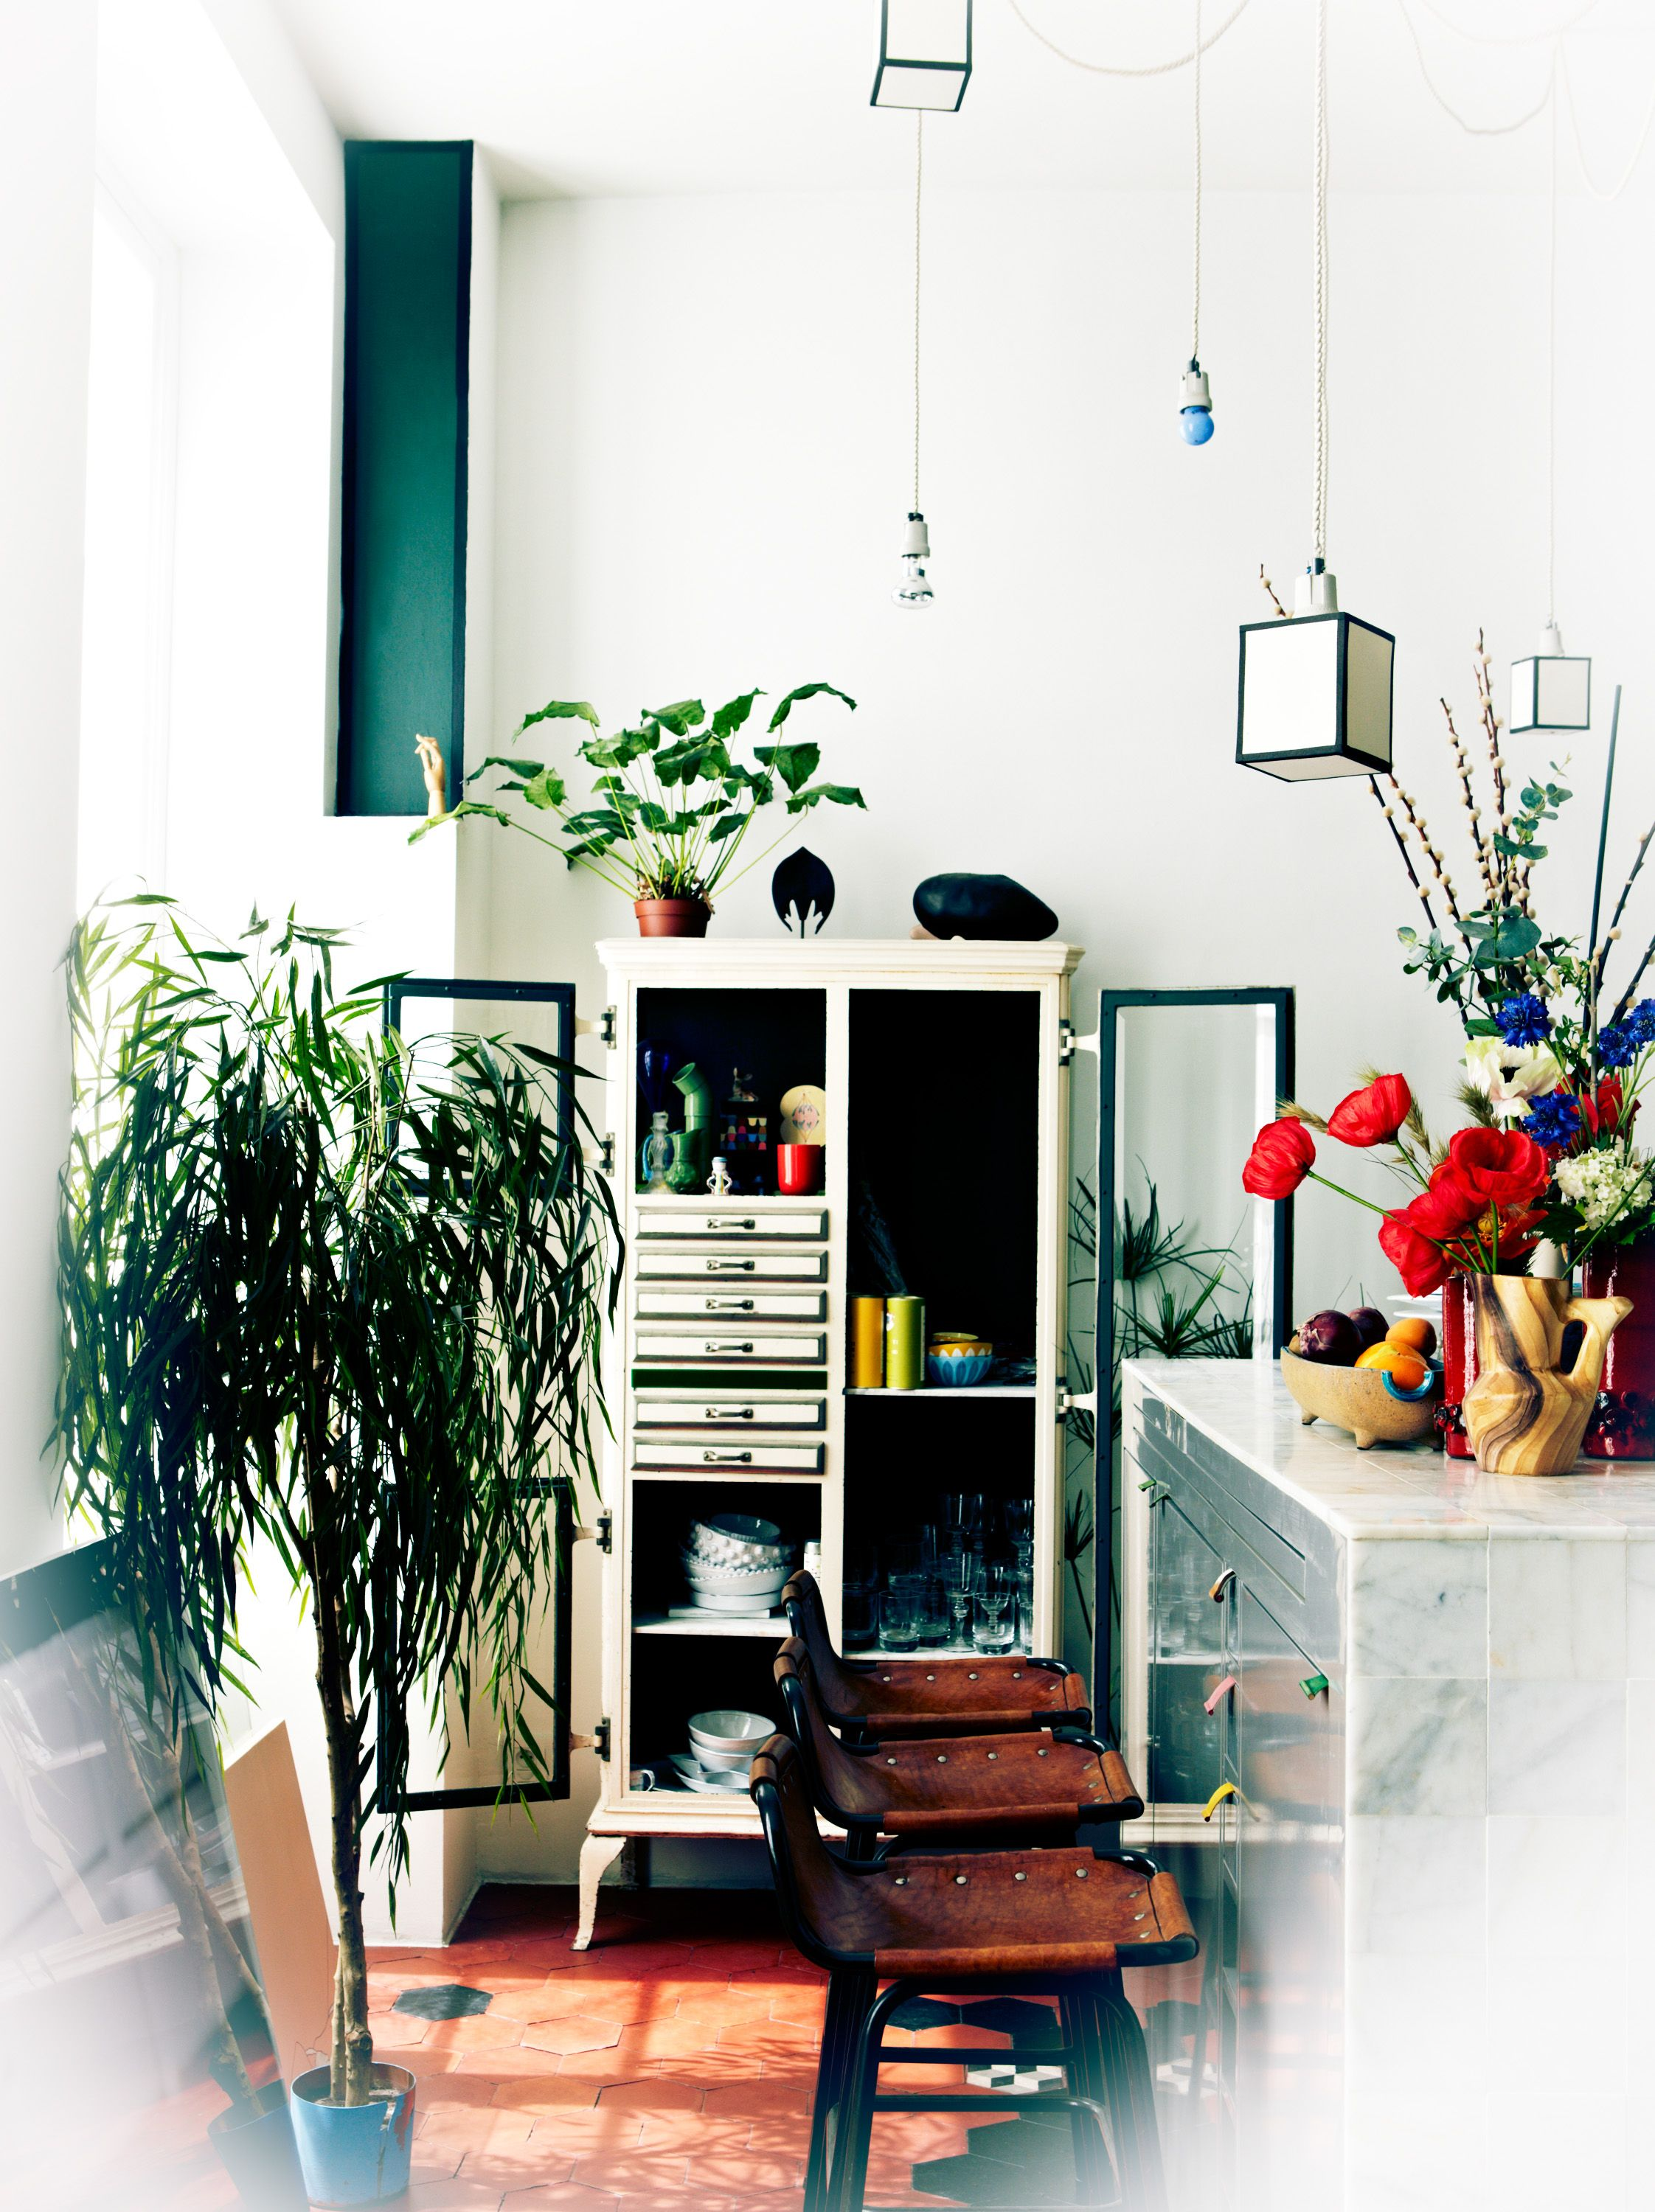 Home Interior Design Game Online: Love The Greenery And The Cabinet